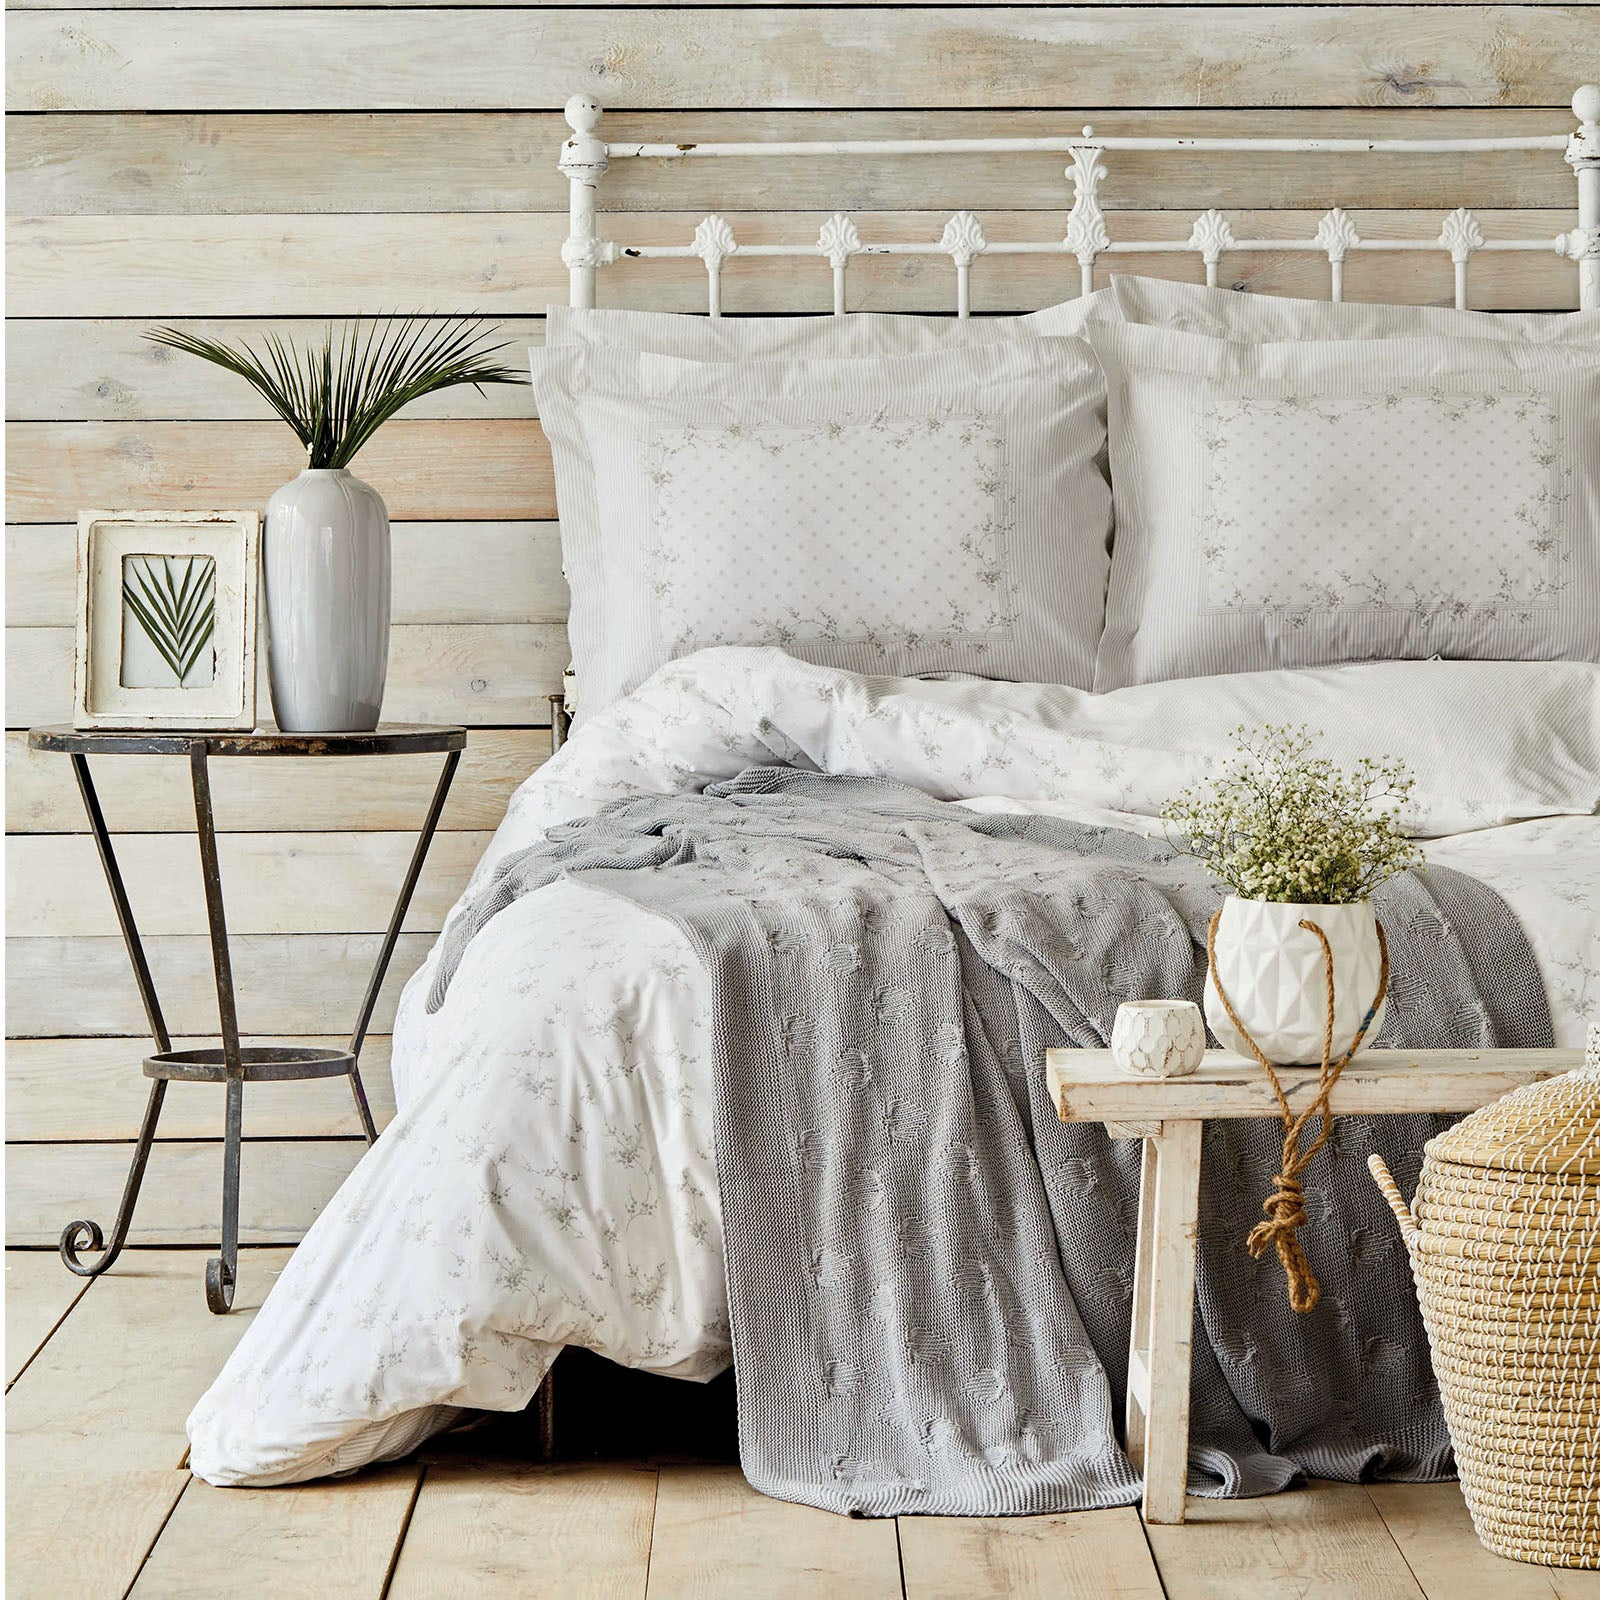 FRONDA GRI   Bedding  Set 200.16.01.0210